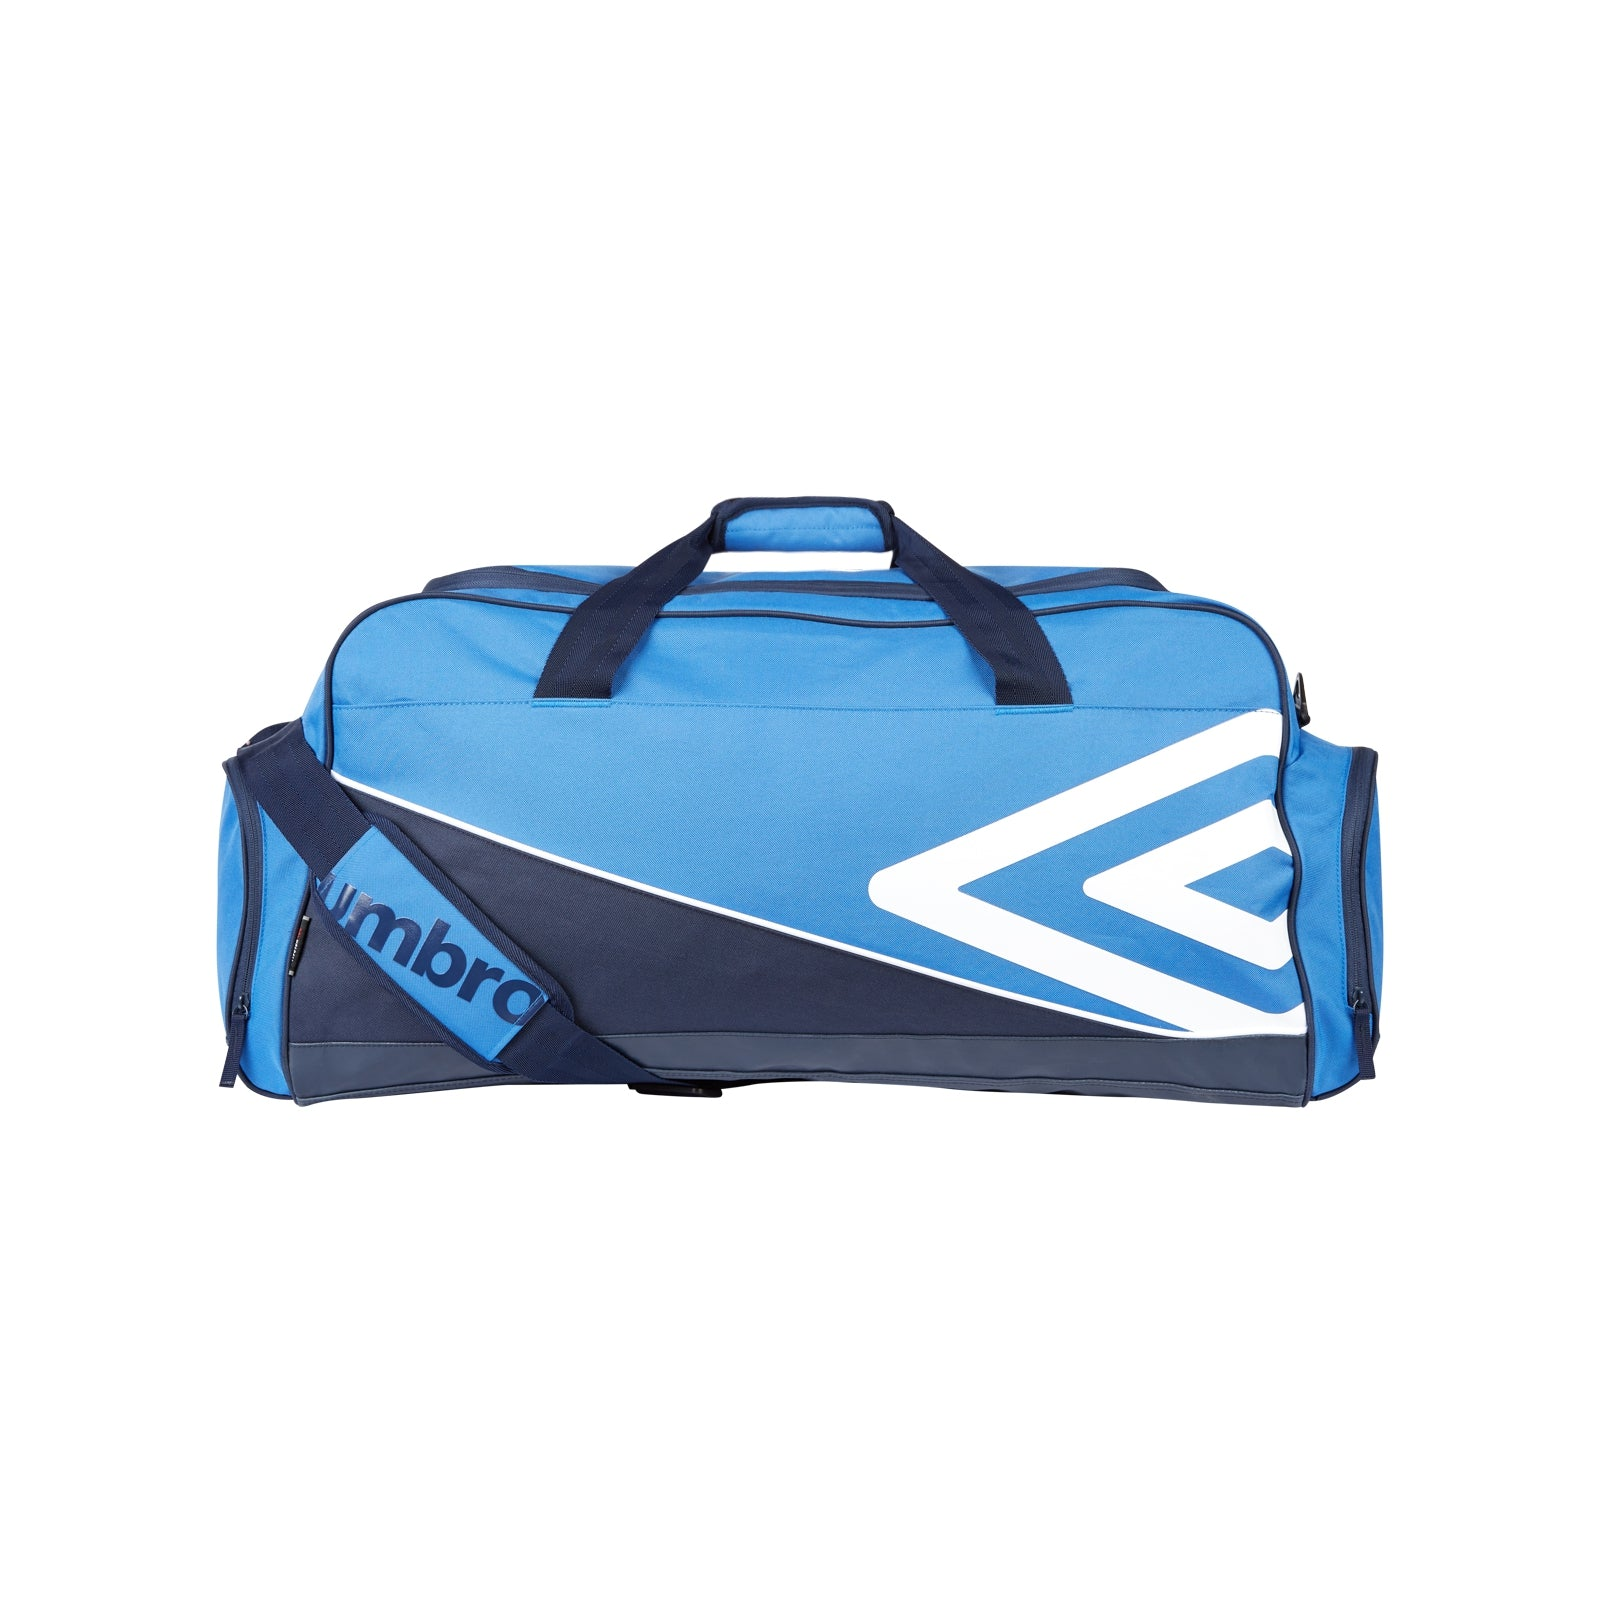 Umbro Pro Training Holdall in royal and navy with large white double diamond logo, and 2 end pockets